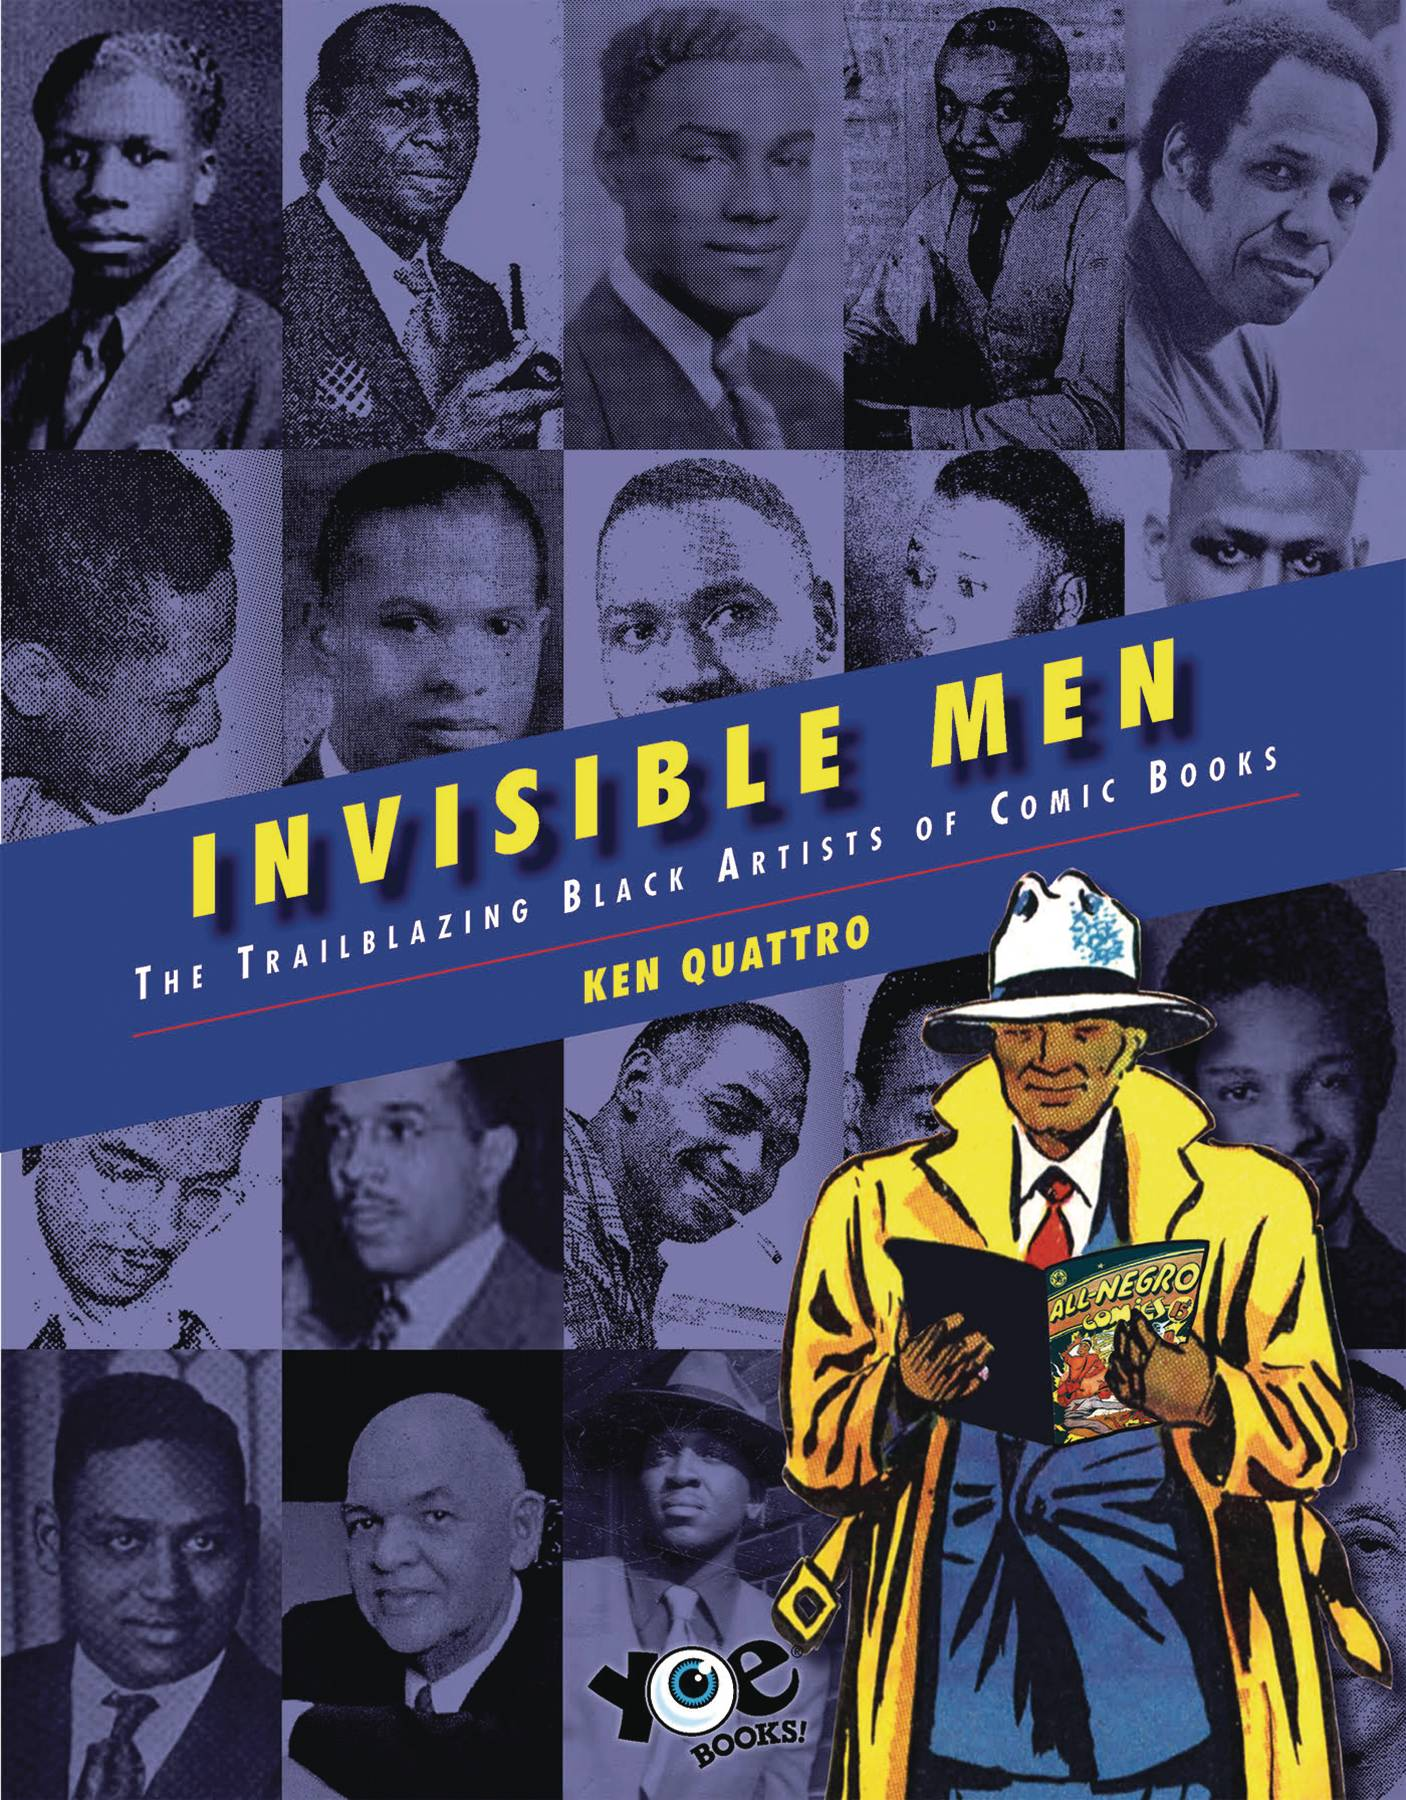 INVISIBLE MEN TRAILBLAZING BLACK ARTISTS OF COMIC BOOKS HC | Phoenix Comics and Games